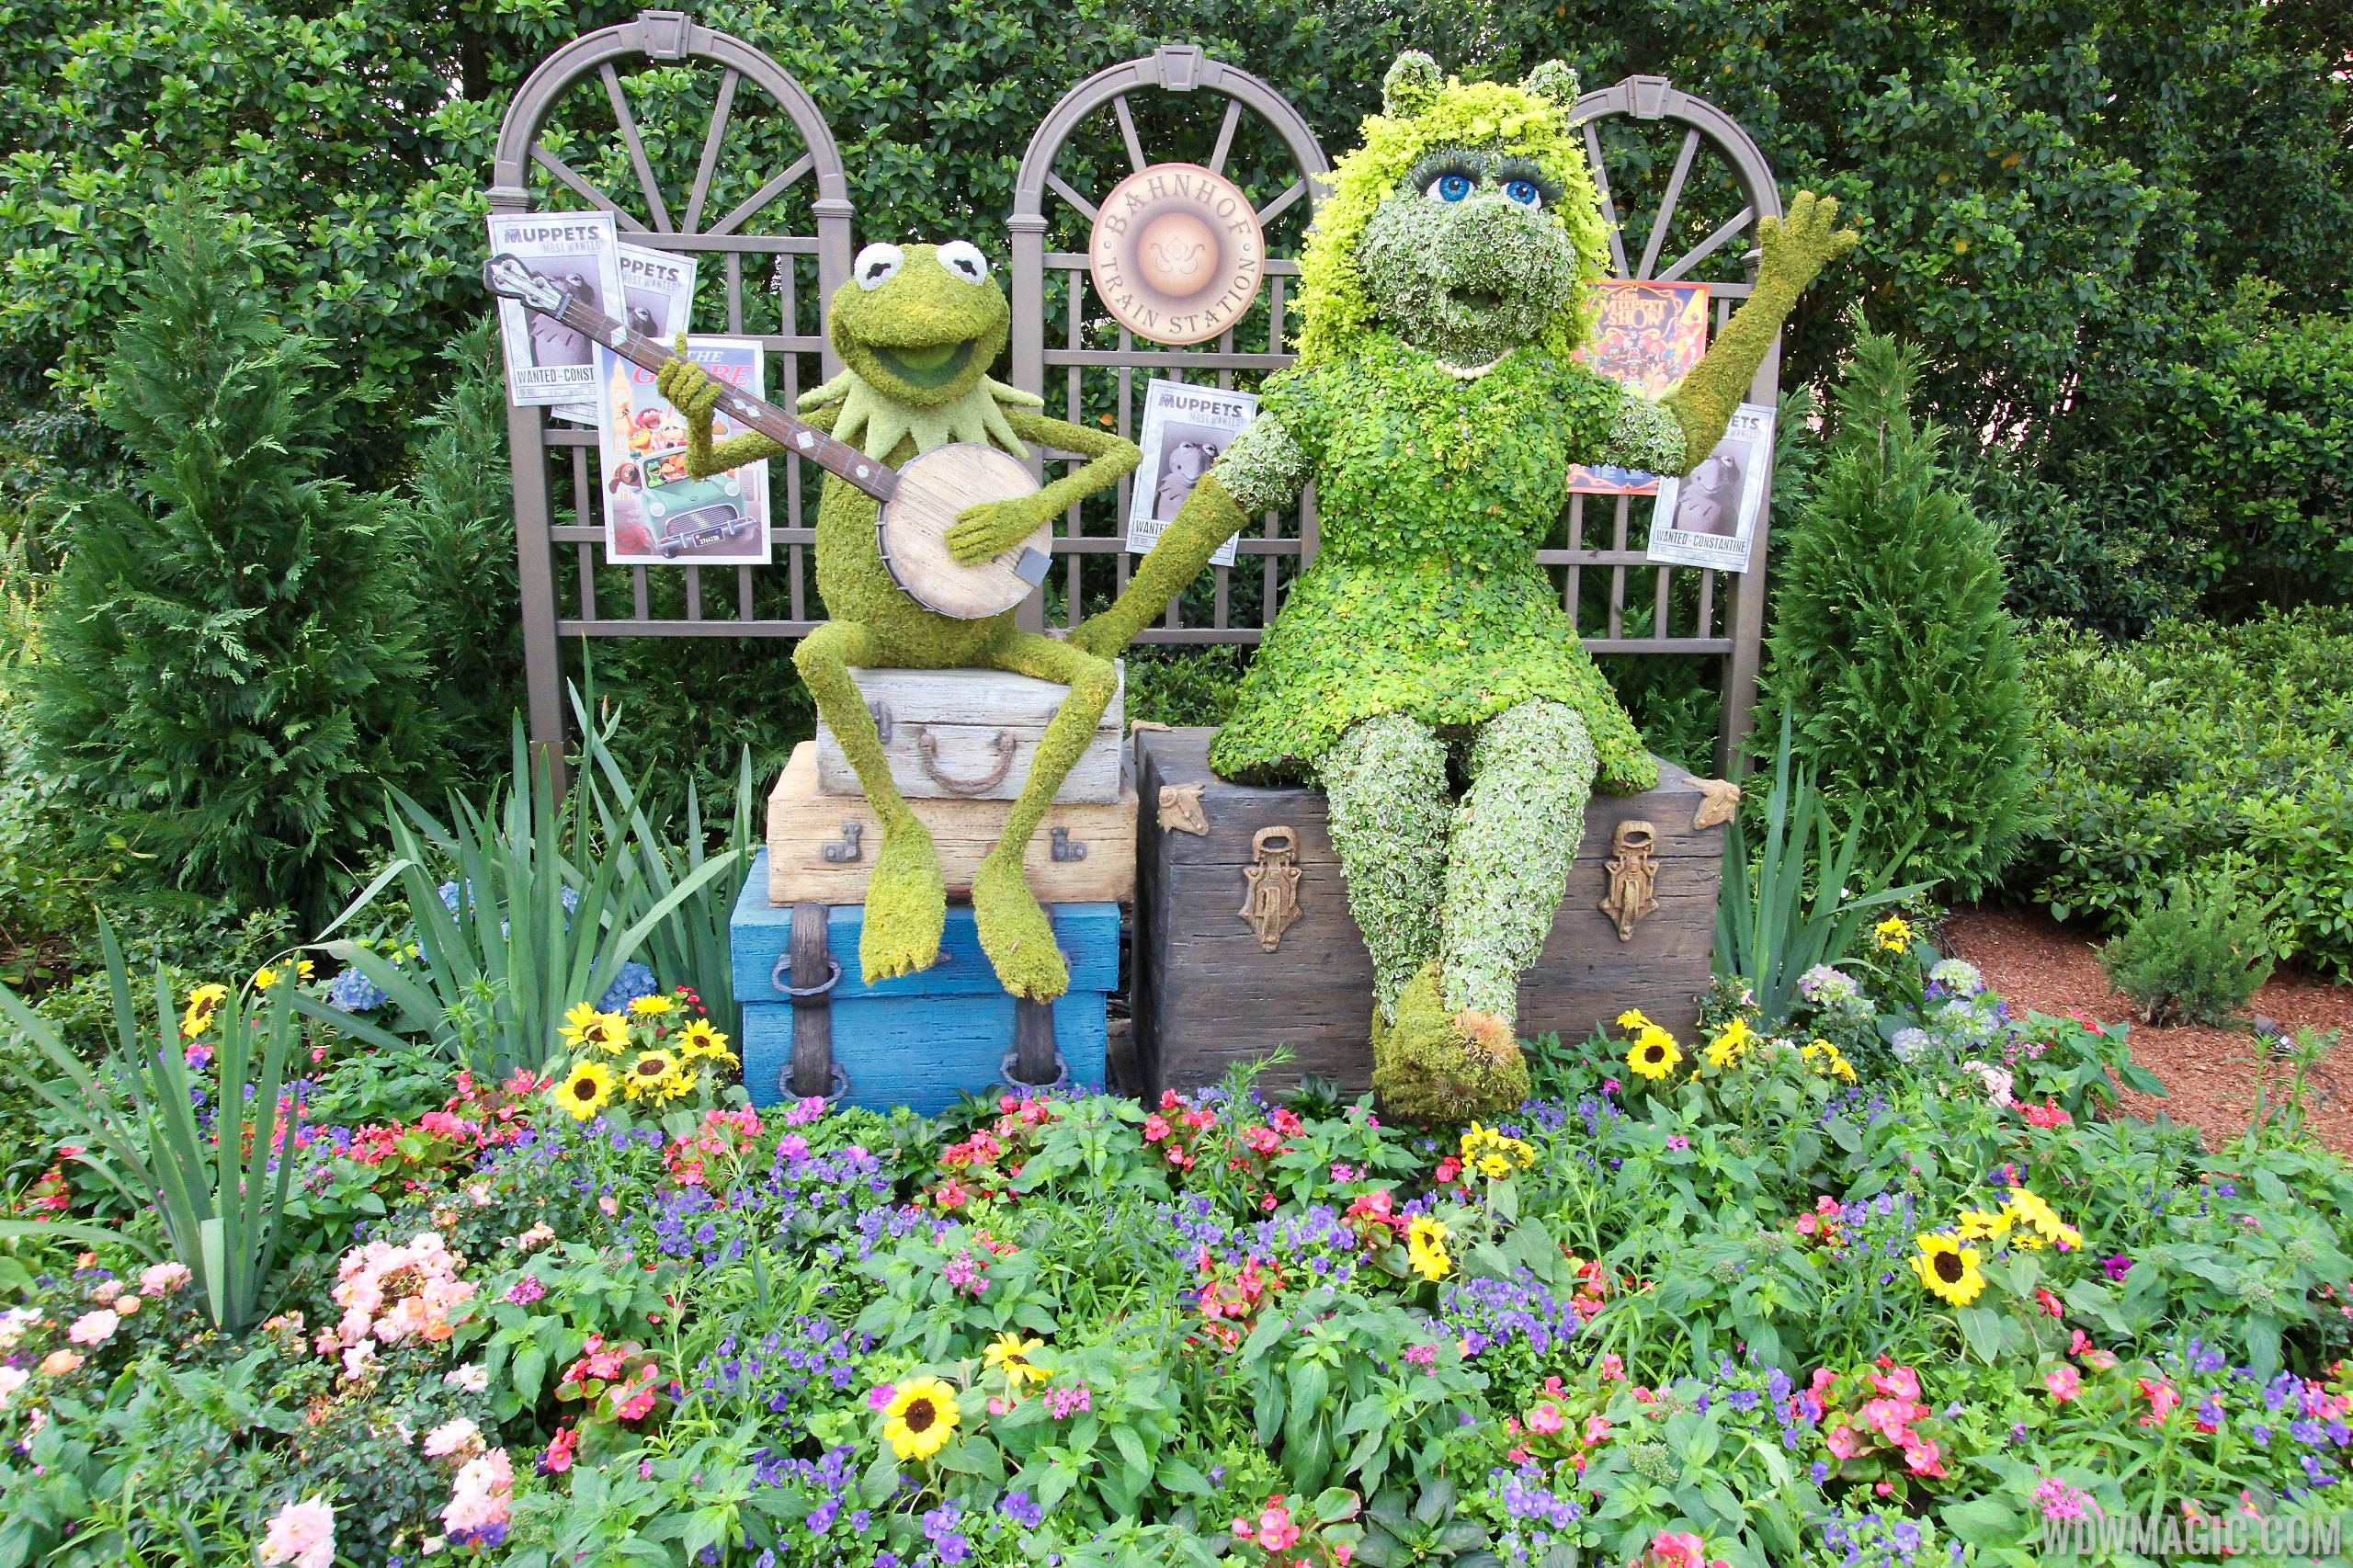 2014 Epcot International Flower And Garden Festival Opening Day Tour Photo 64 Of 82